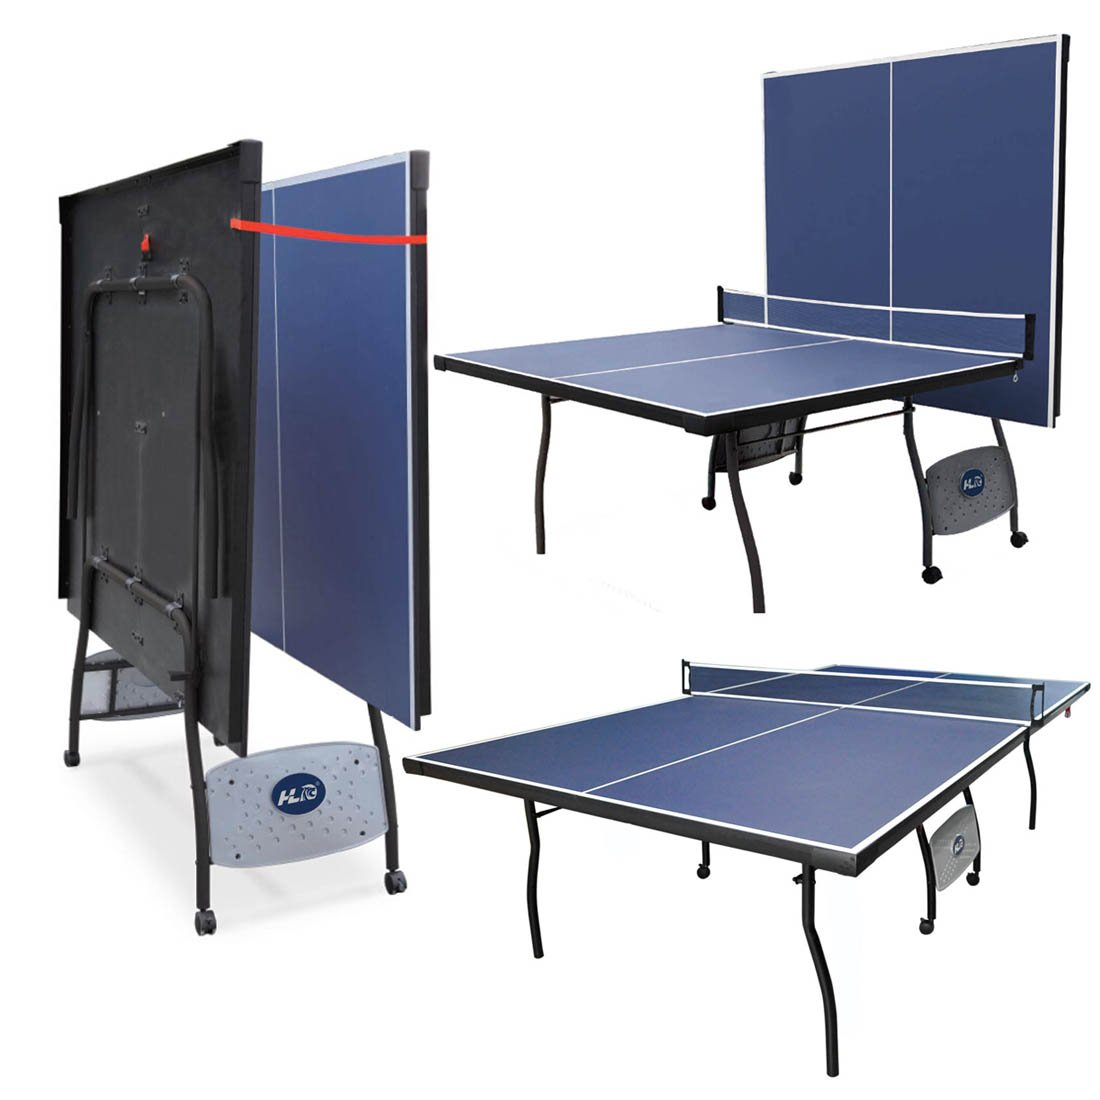 9FT Professional Full Size Folding Indoor Outdoor Fitness Table Tennis  Table Ping Pong Table Set With Net Blue: Amazon.co.uk: Sports U0026 Outdoors